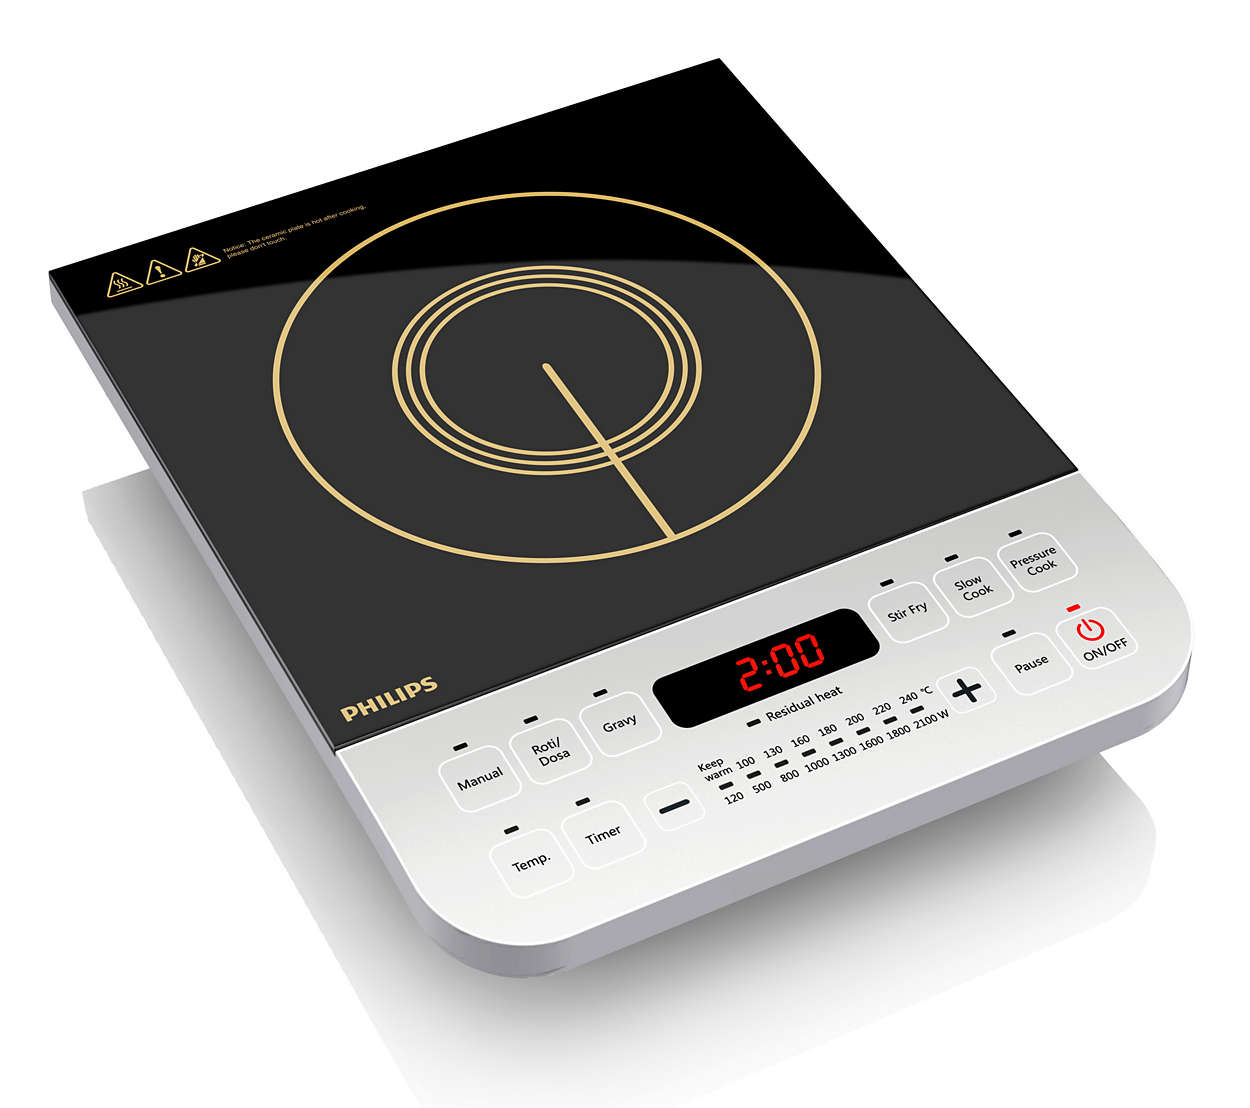 Daily Collection Induction Cooker Hd4928 00 Philips